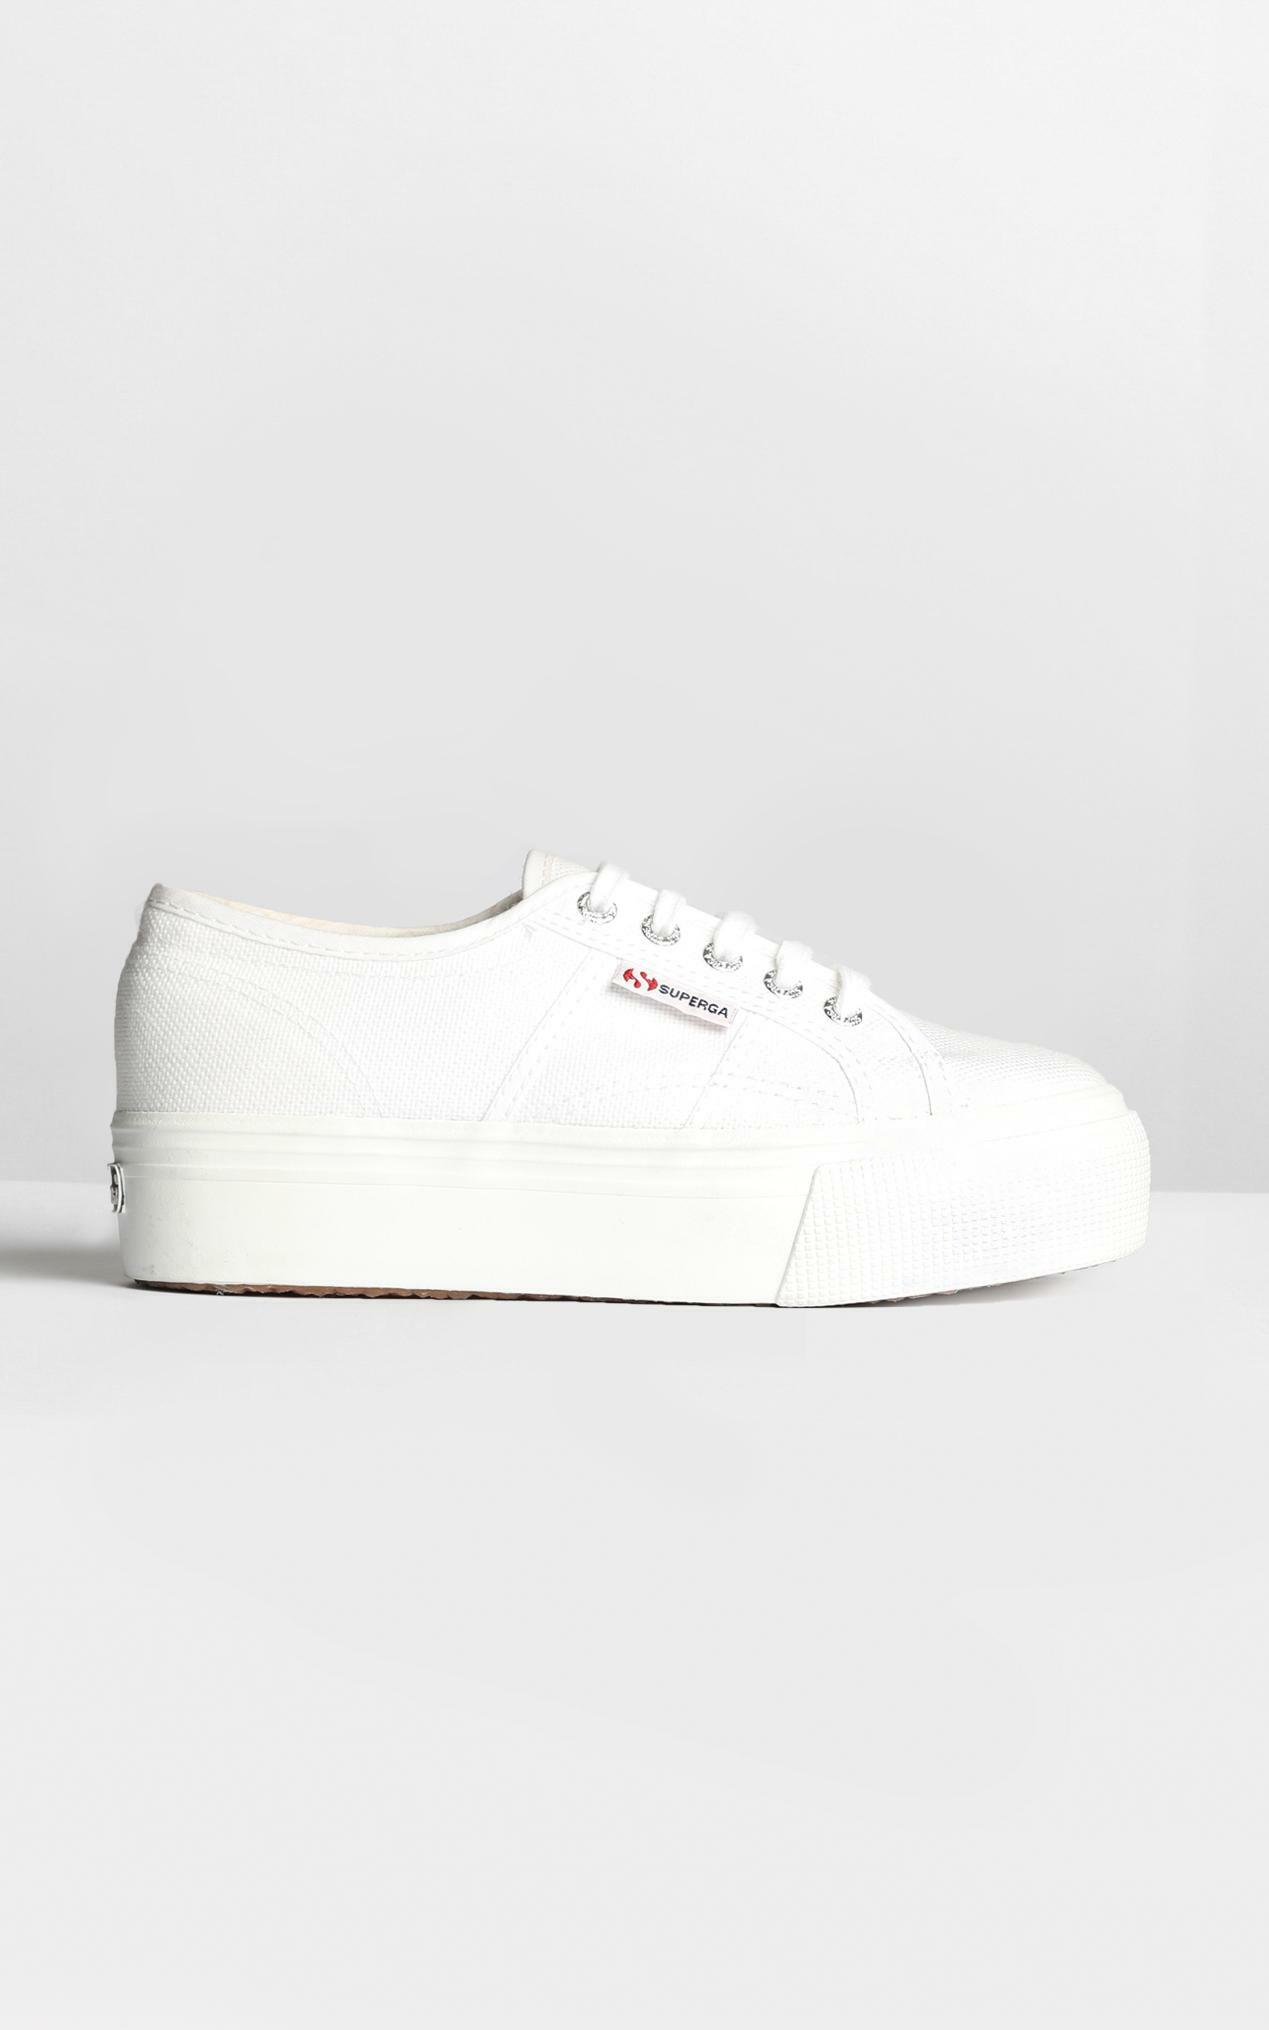 Superga - 2790 ACOTW Linea Up And Down Platform Sneakers in white canvas - 9, White, hi-res image number null